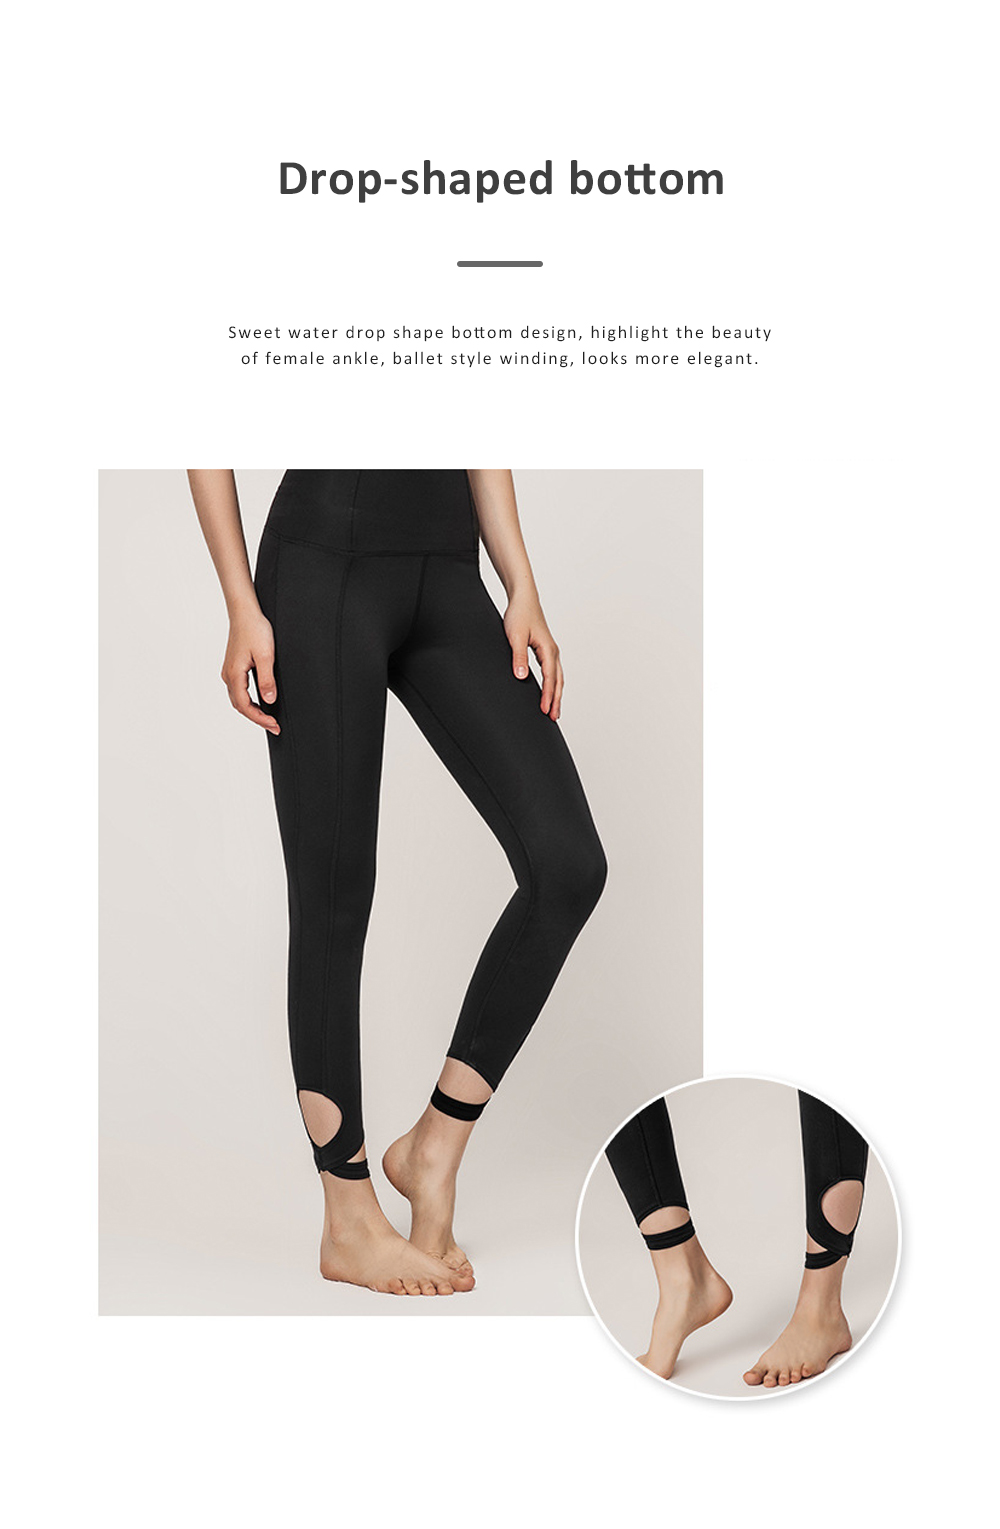 Women's Ultra Soft Yoga Suit With Strap-on Bra and High Waist Tummy Control Workout Leggings 5